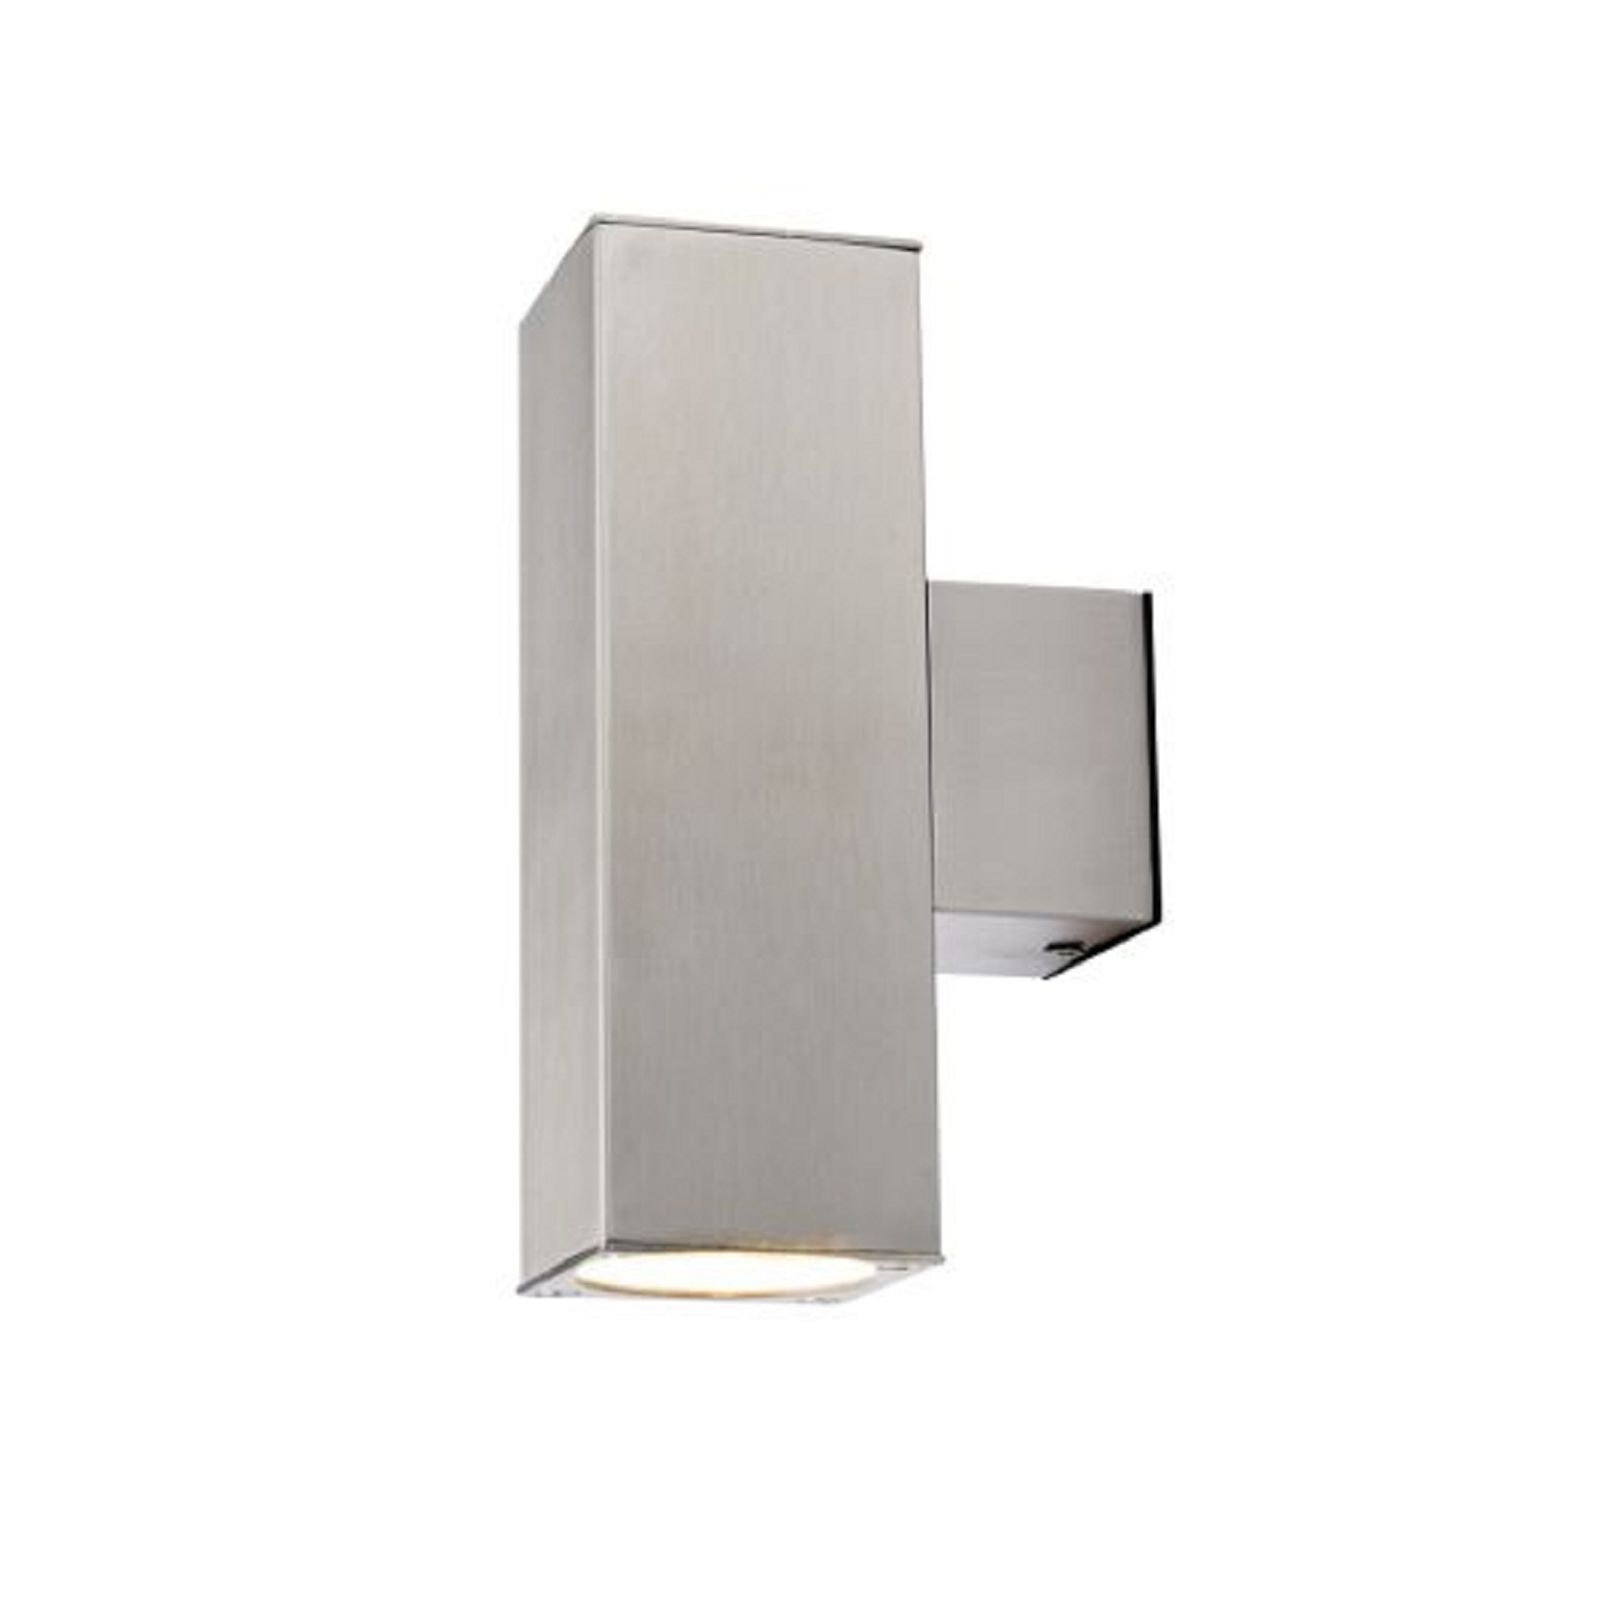 Find ena double silver square wall light at homebase visit your find ena double silver square wall light at homebase visit your local store for the mozeypictures Choice Image